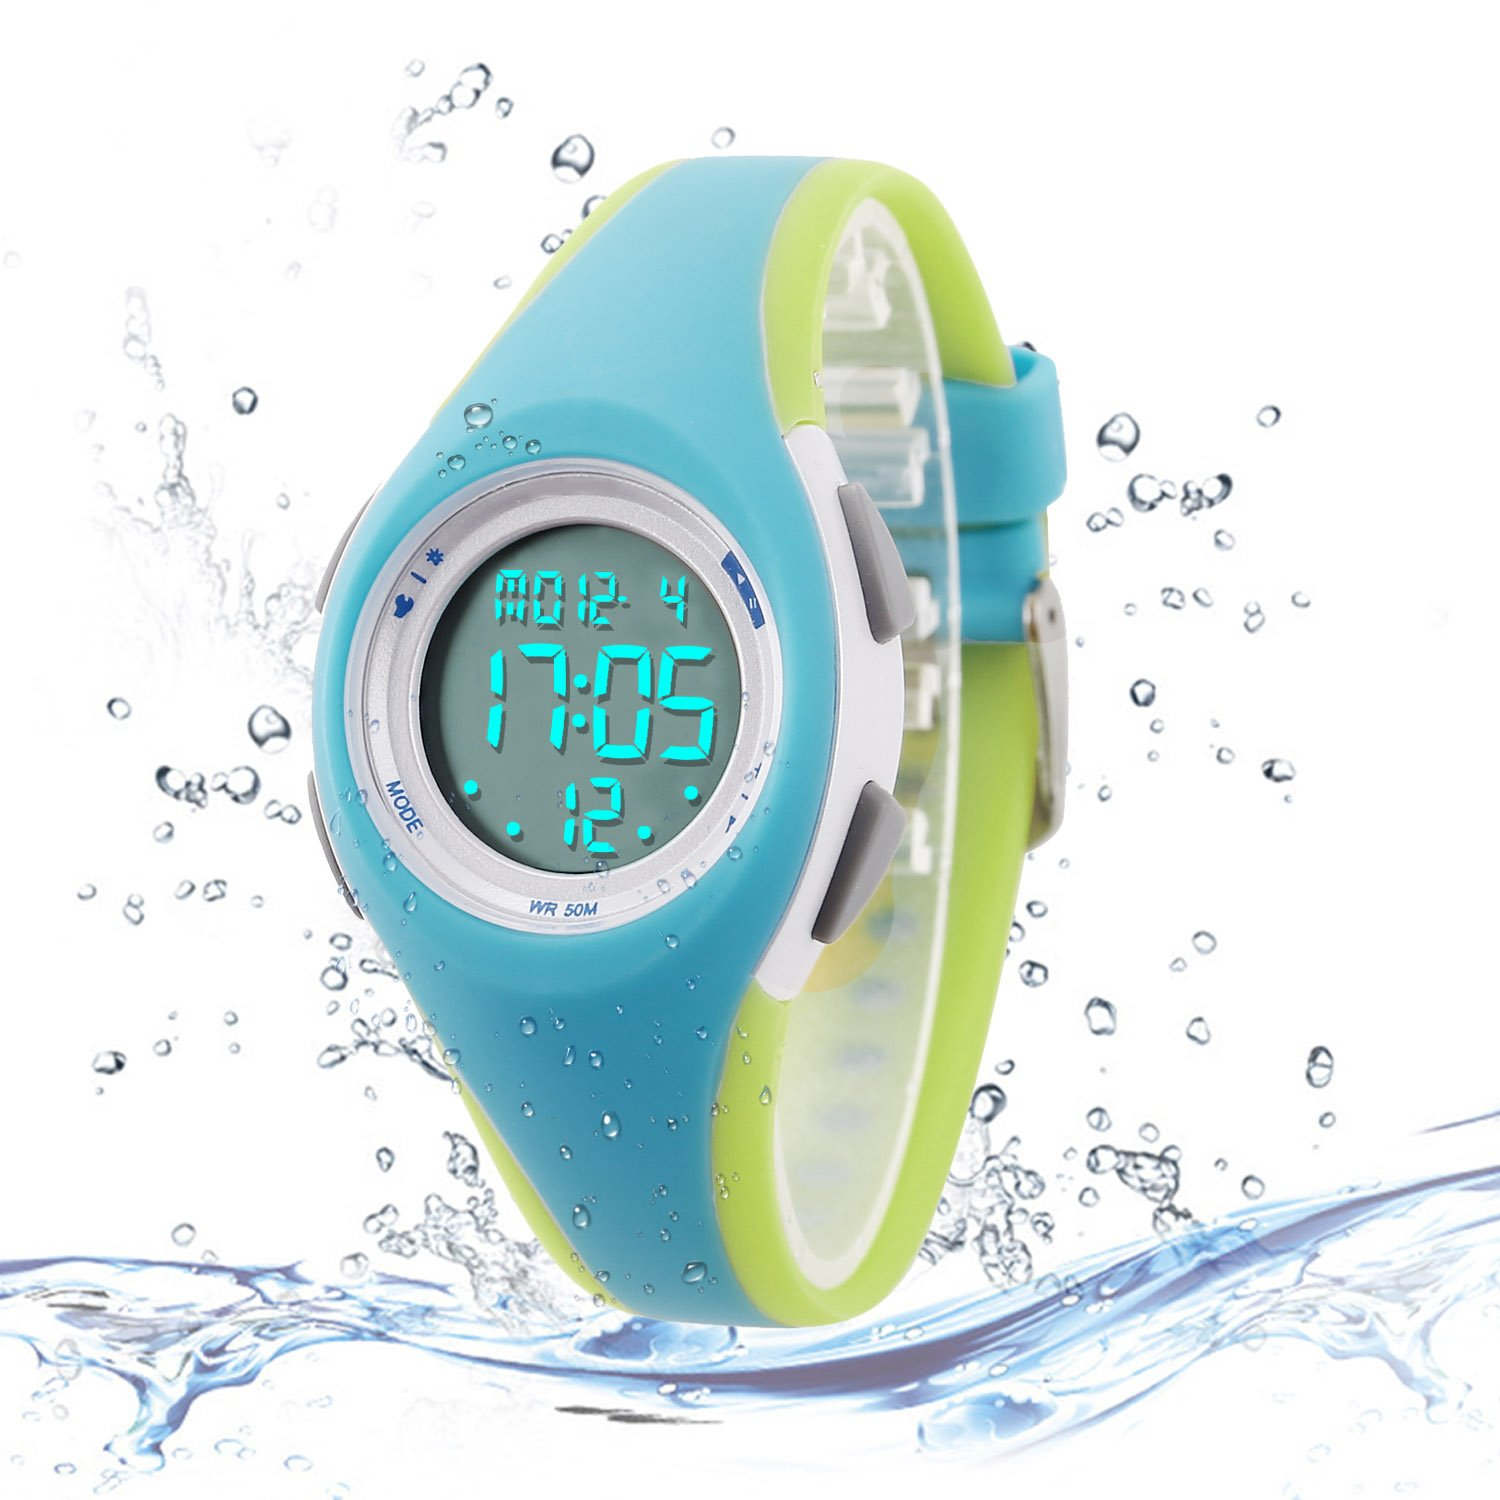 Kids Digital Sport Watch Outdoor Waterproof LED Watch with Alarm for Child Boy Girls Gift Kids Watch